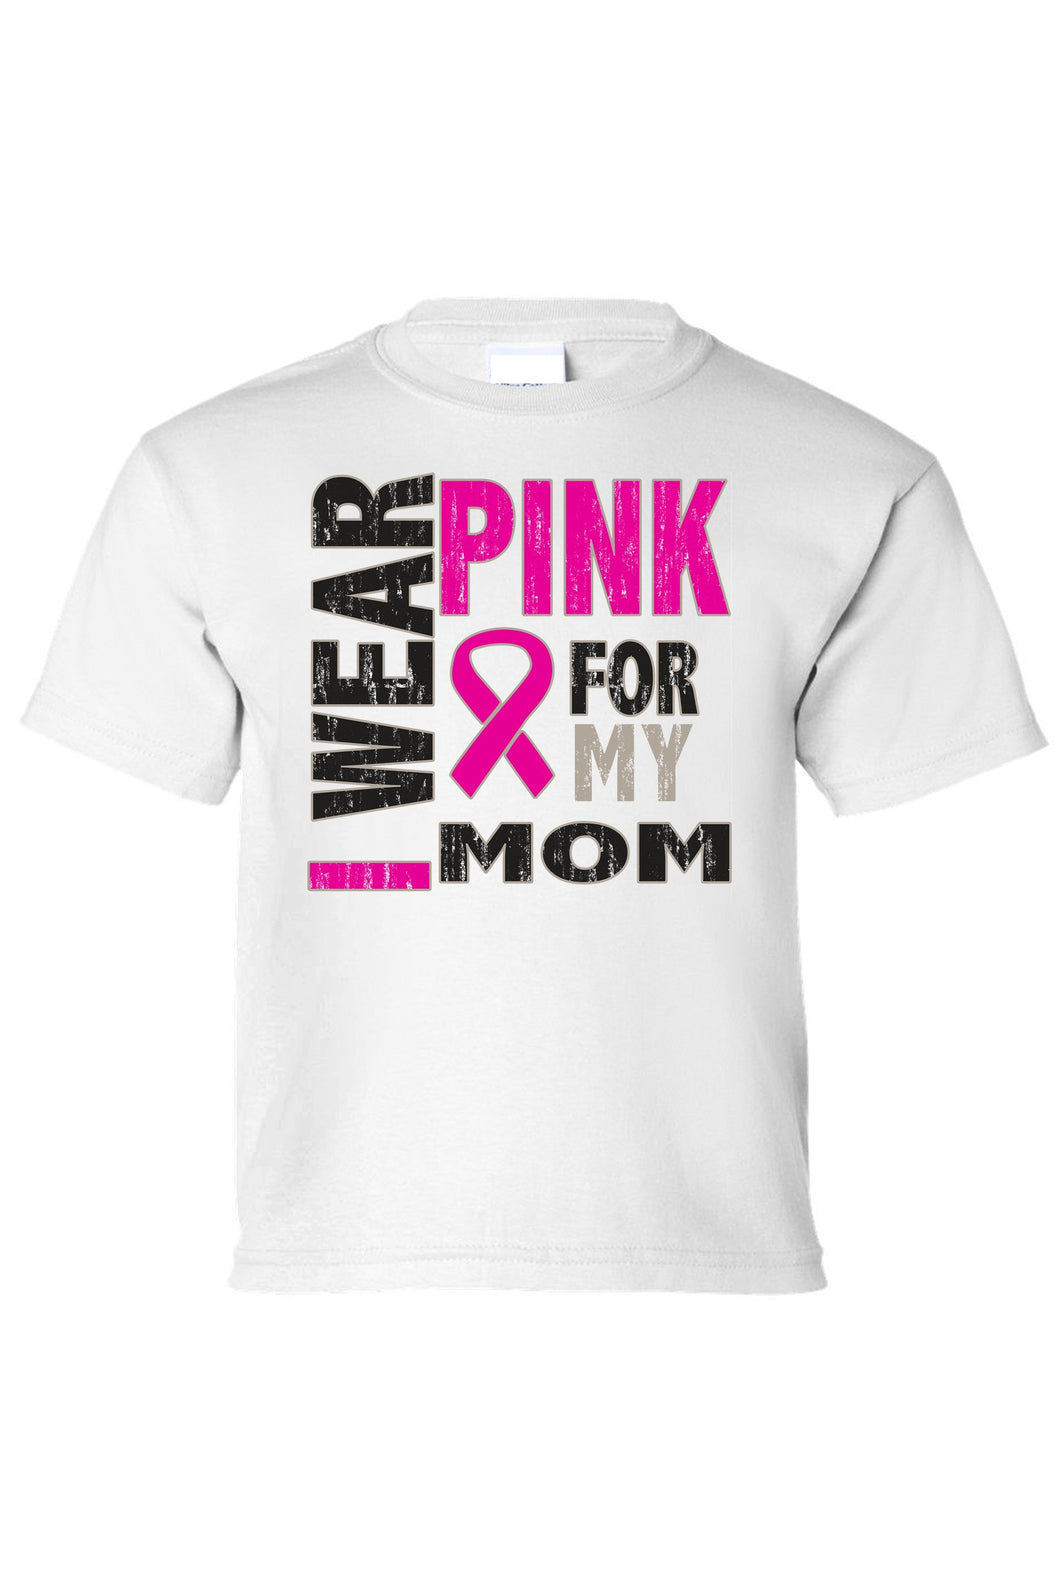 Kids Tee I Wear Pink For My Mom Short Sleeve